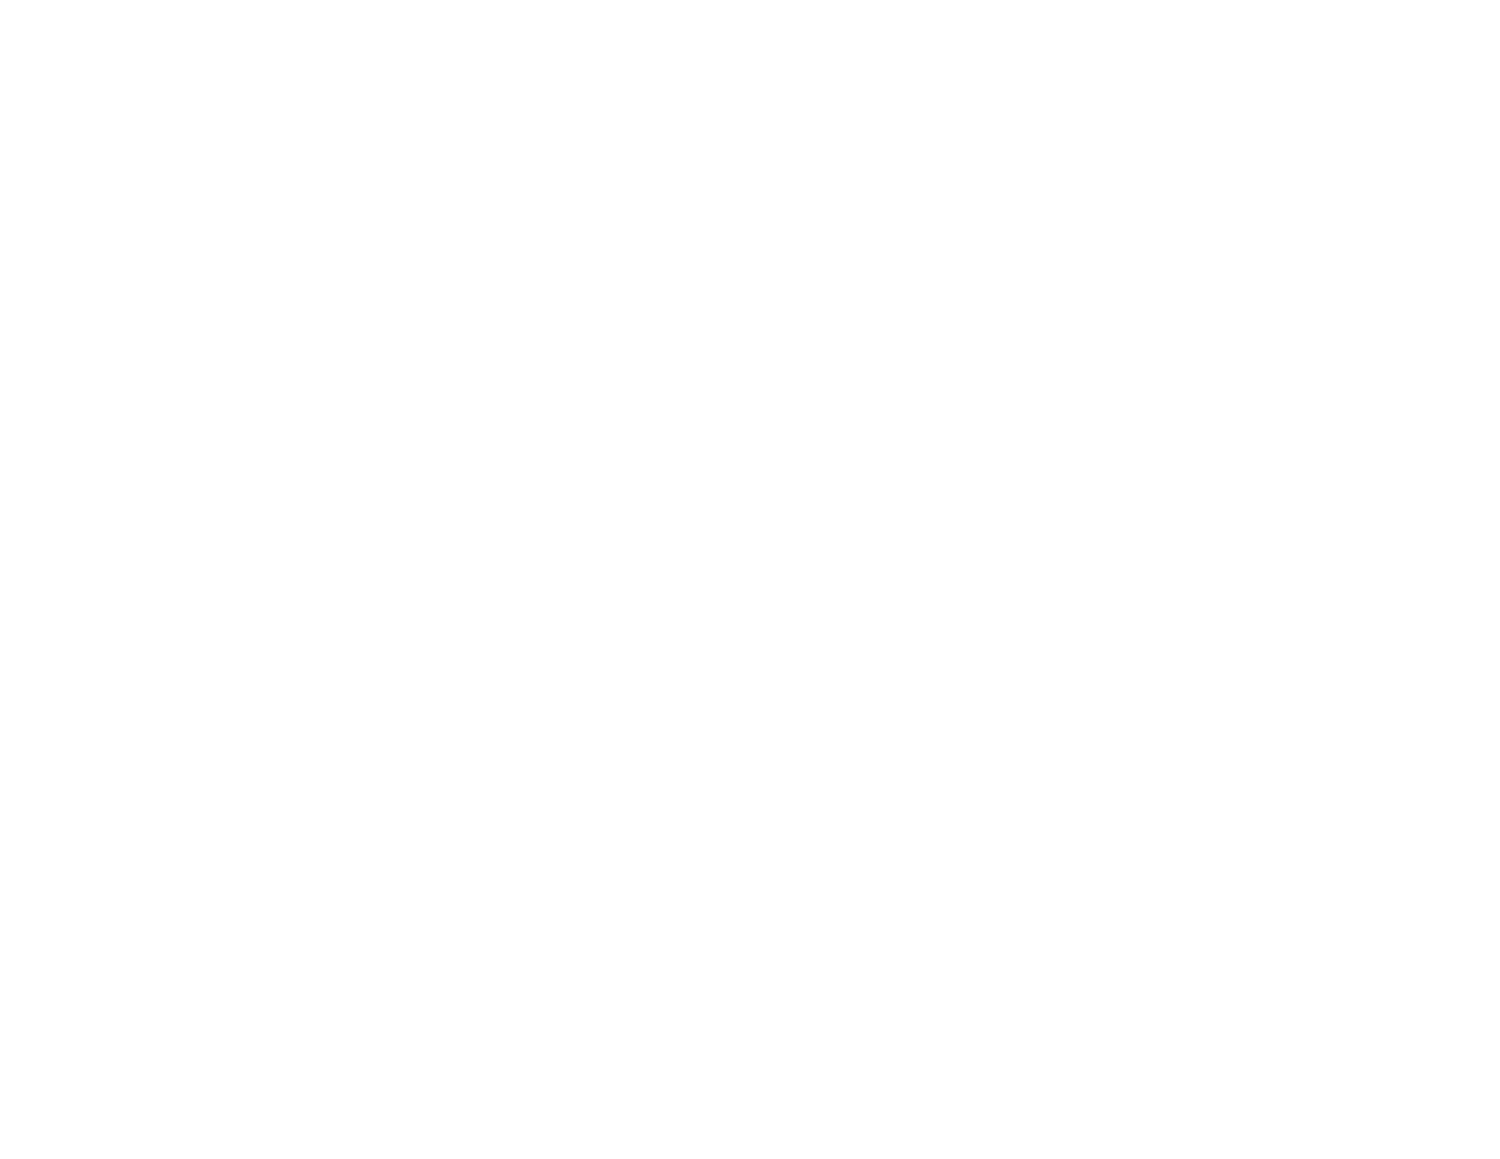 Central Valley Brewfest